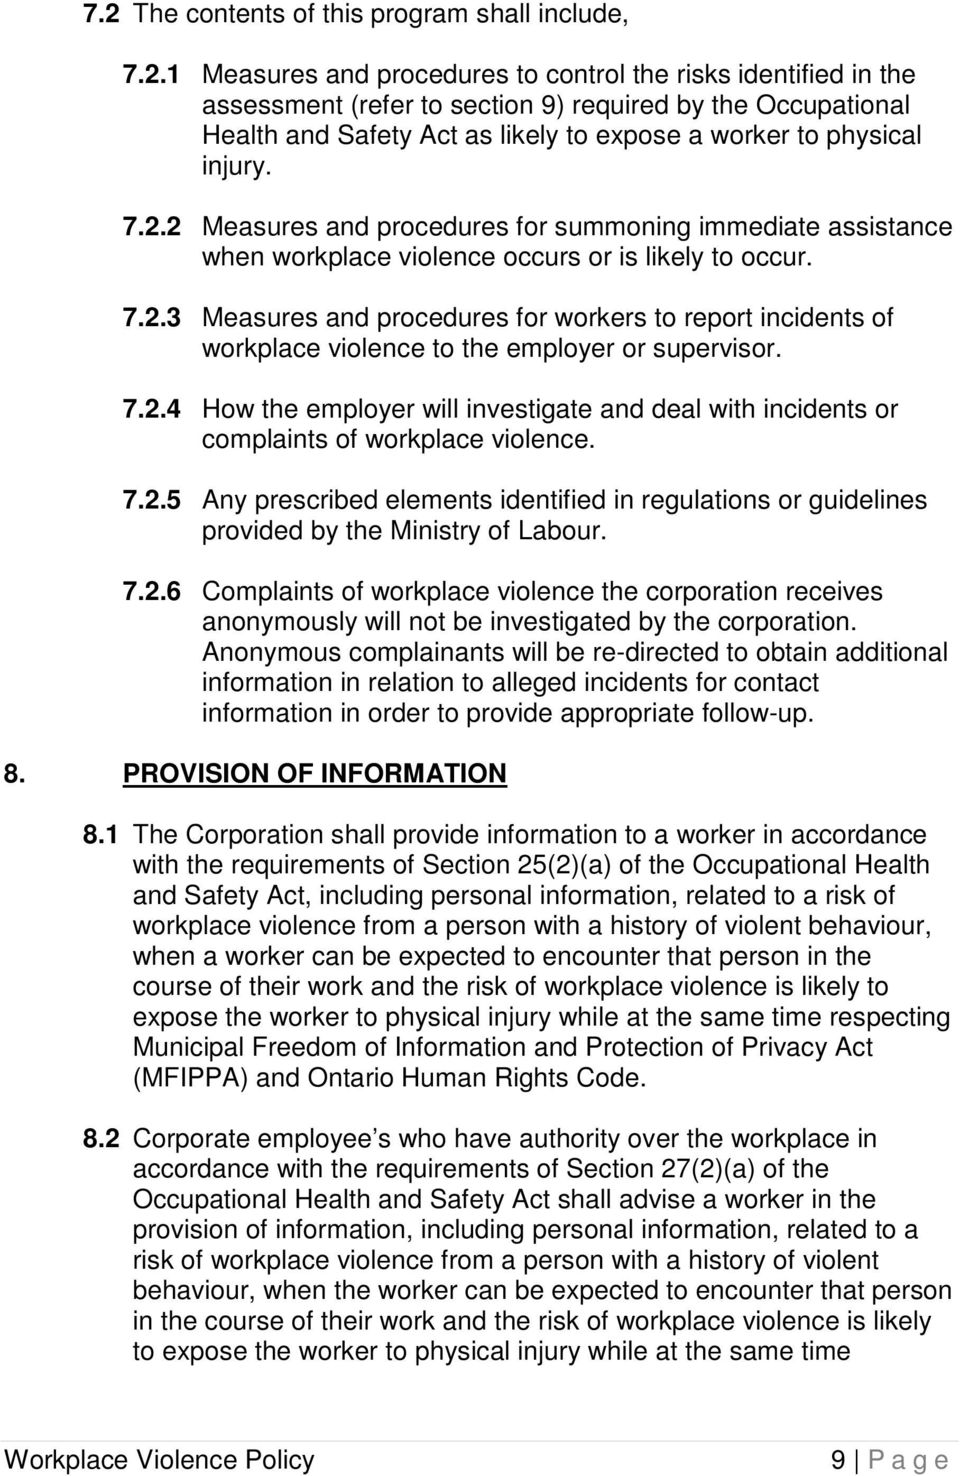 7.2.4 How the employer will investigate and deal with incidents or complaints of workplace violence. 7.2.5 Any prescribed elements identified in regulations or guidelines provided by the Ministry of Labour.